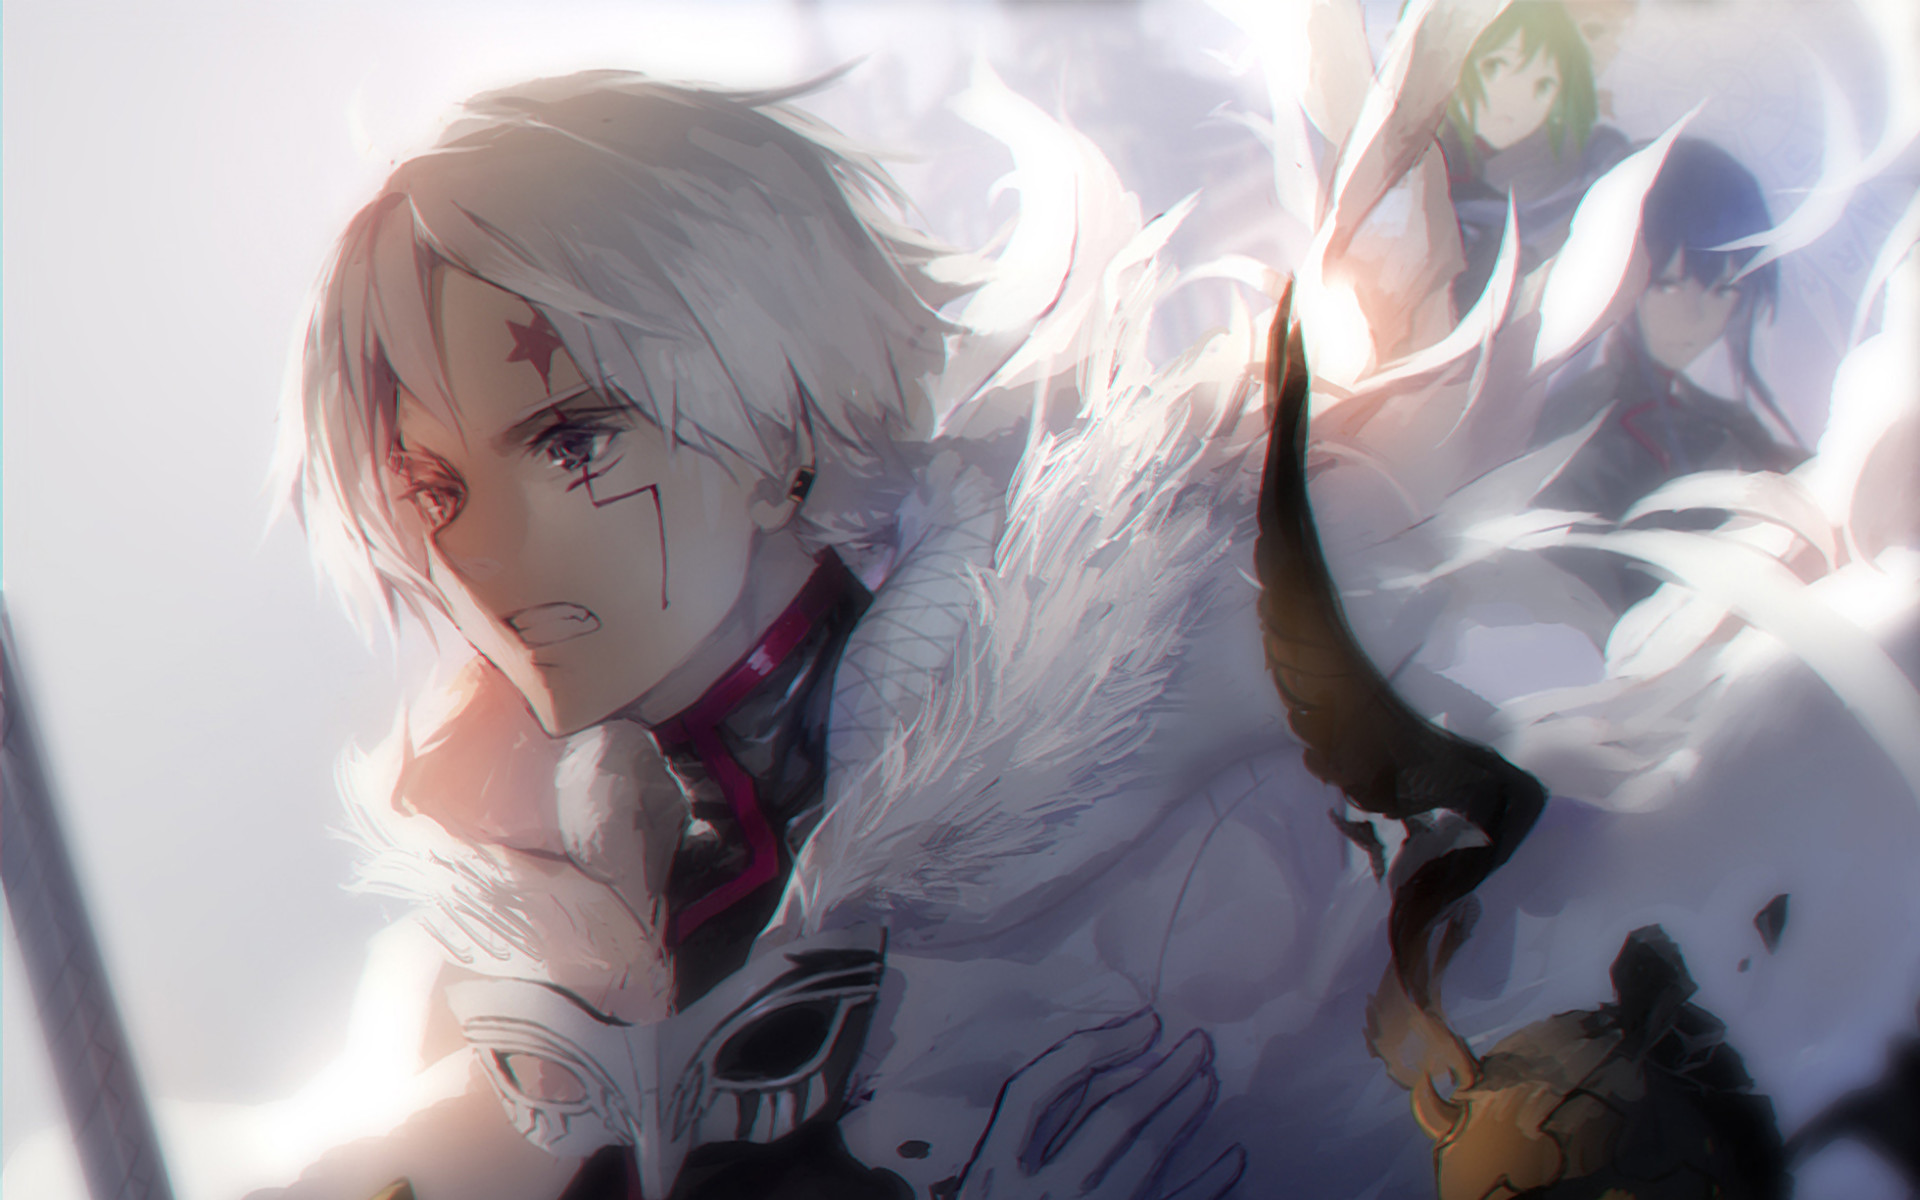 1920x1200 D.Gray-man HD Wallpaper | Background Image |  | ID:720820 -  Wallpaper Abyss